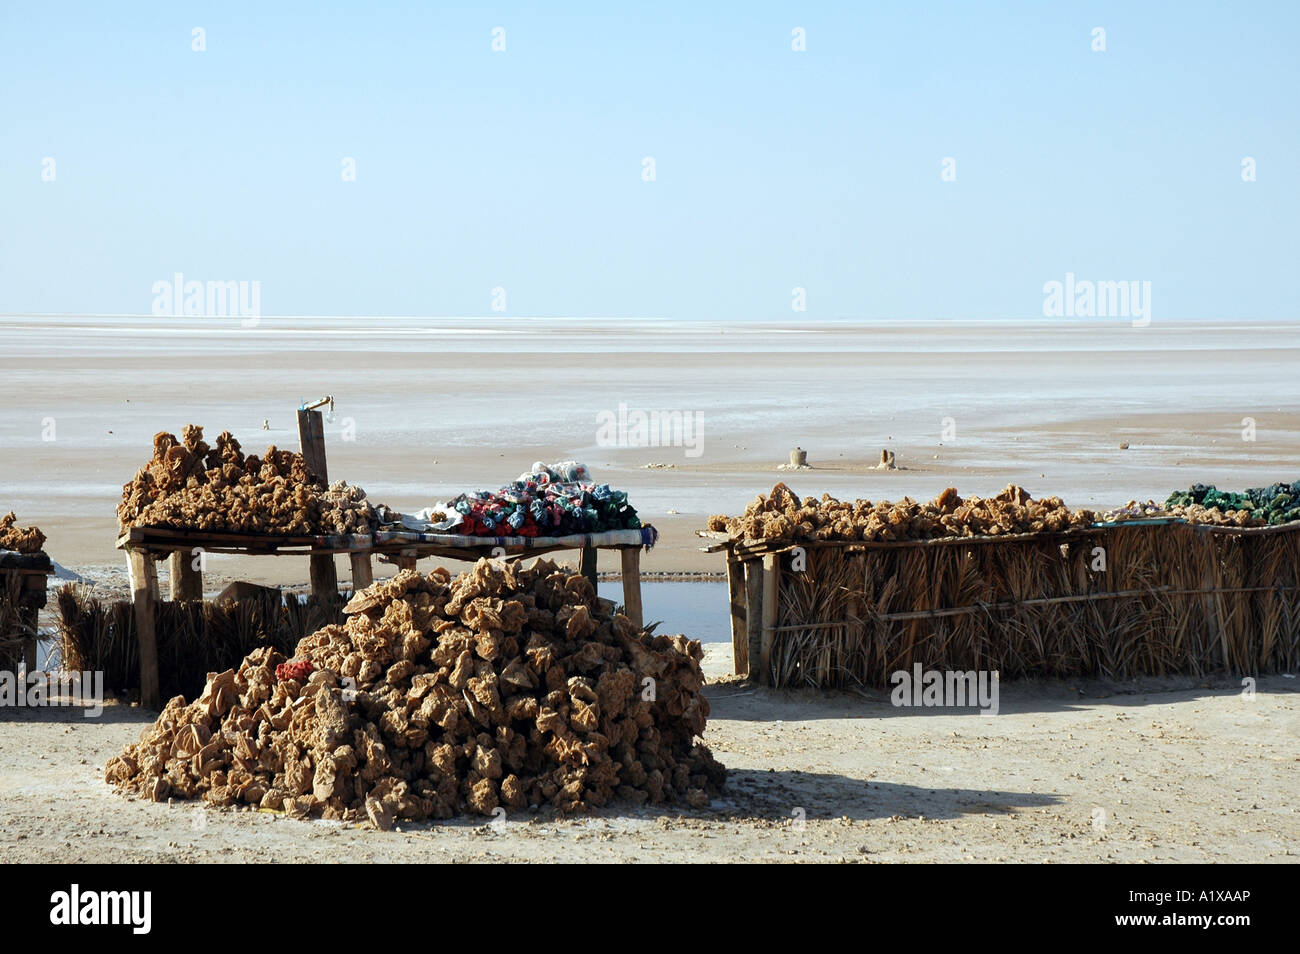 Souvenirs stall with desert roses on the roadside of causeway crossing Chott el Jerid lake in Tunisia - Stock Image